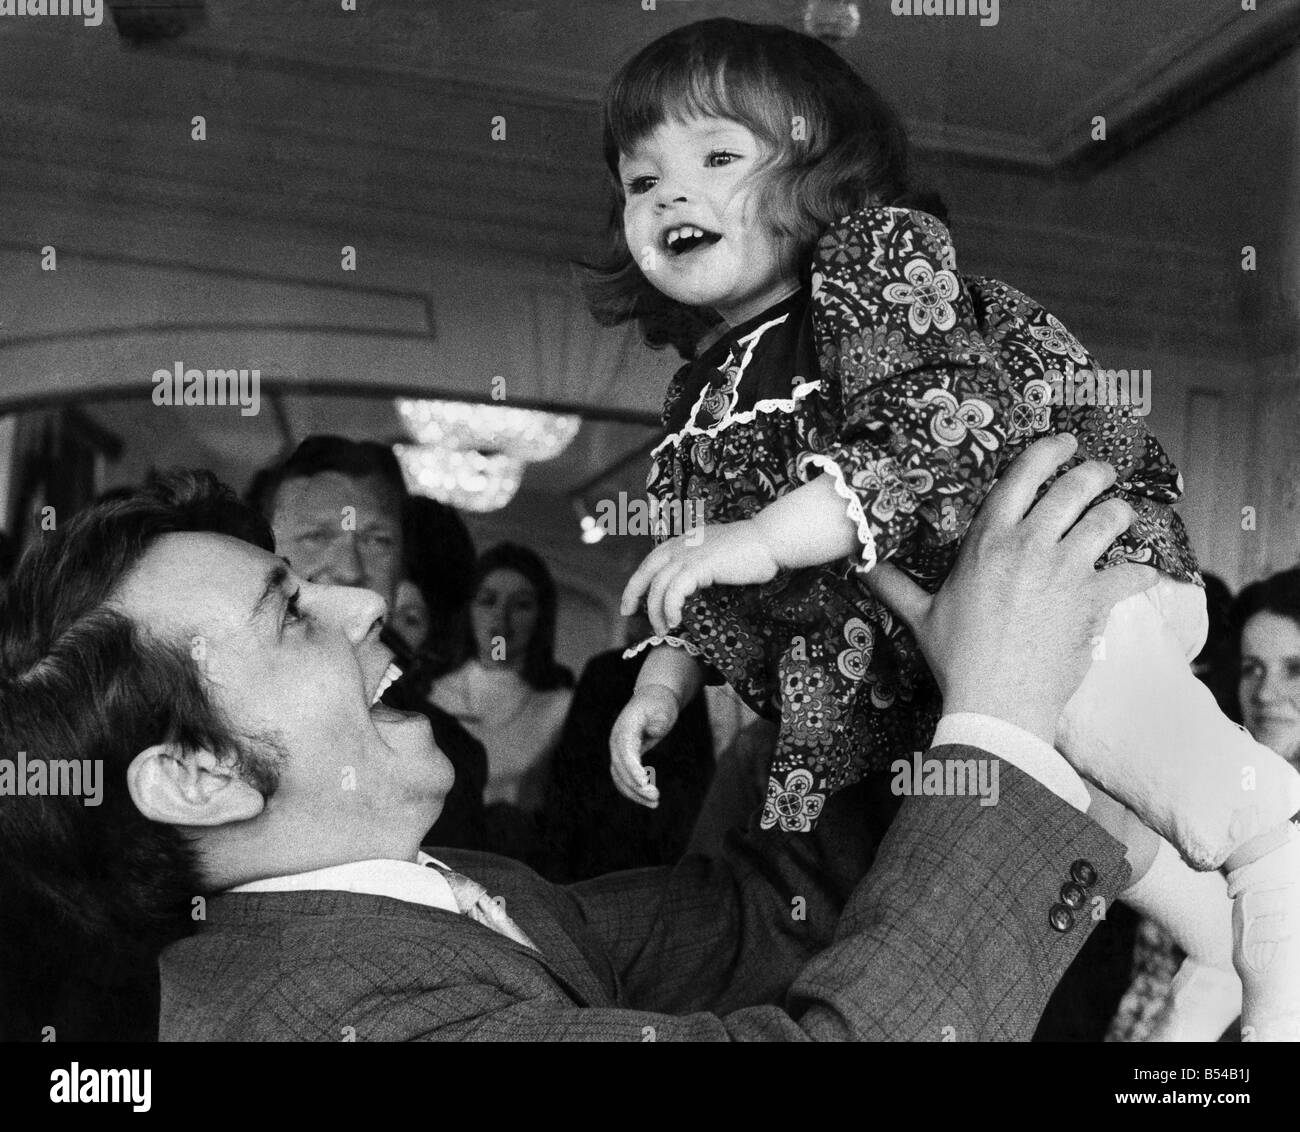 18 month old Rachel Atkinson won £1,000 at a National baby contest. Alan Atkinson and Rachel at the contest. - Stock Image